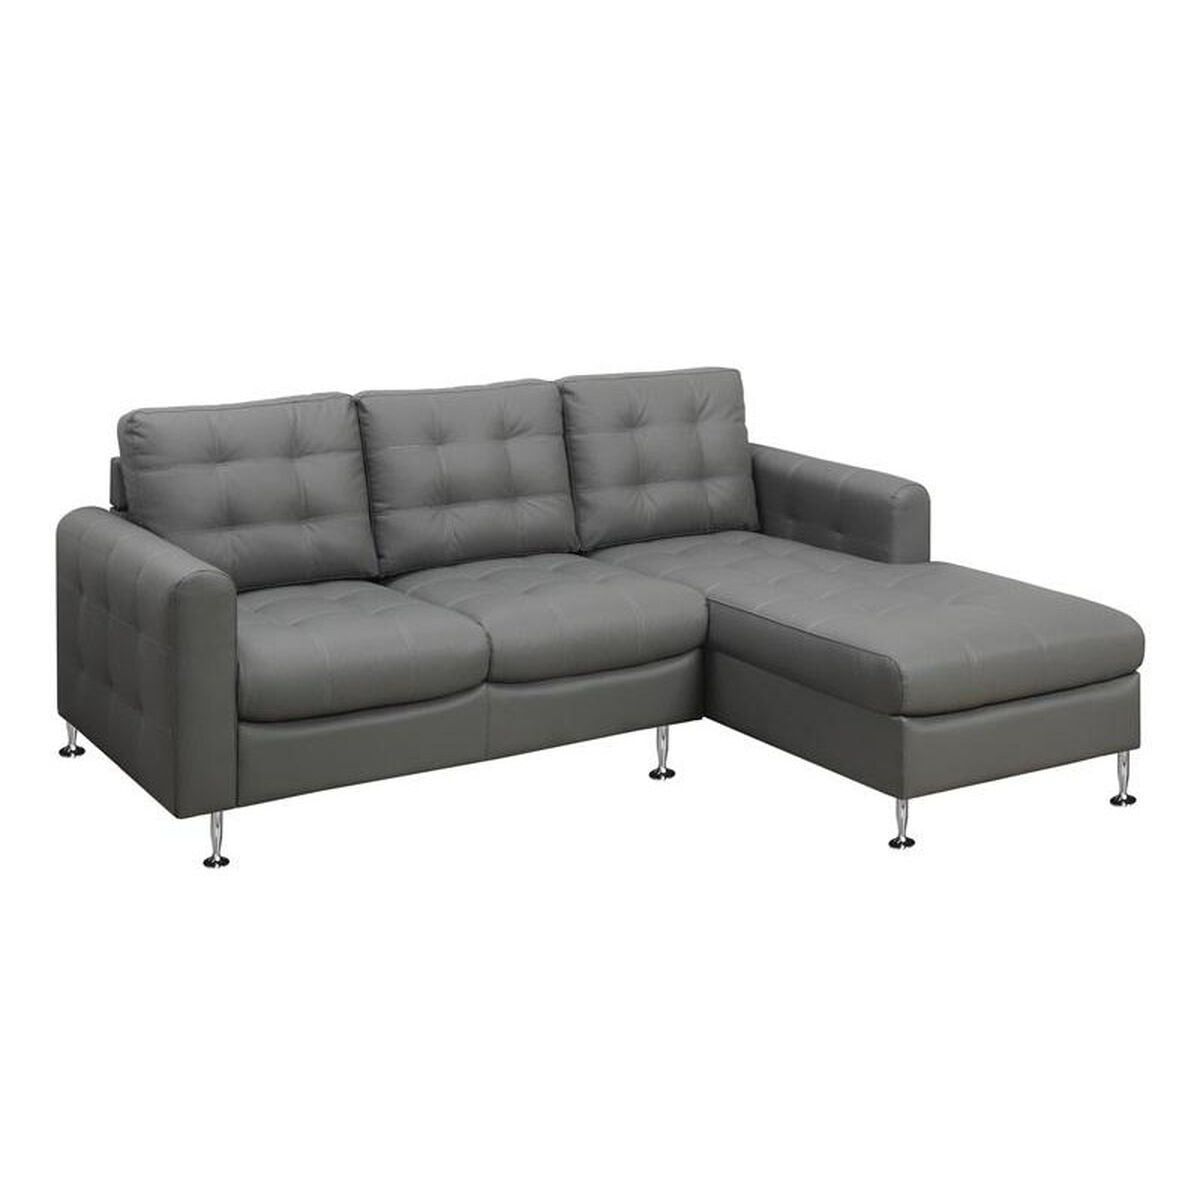 Monarch specialties bonded leather sofa with chaise for Bonded leather sectional sofa with chaise